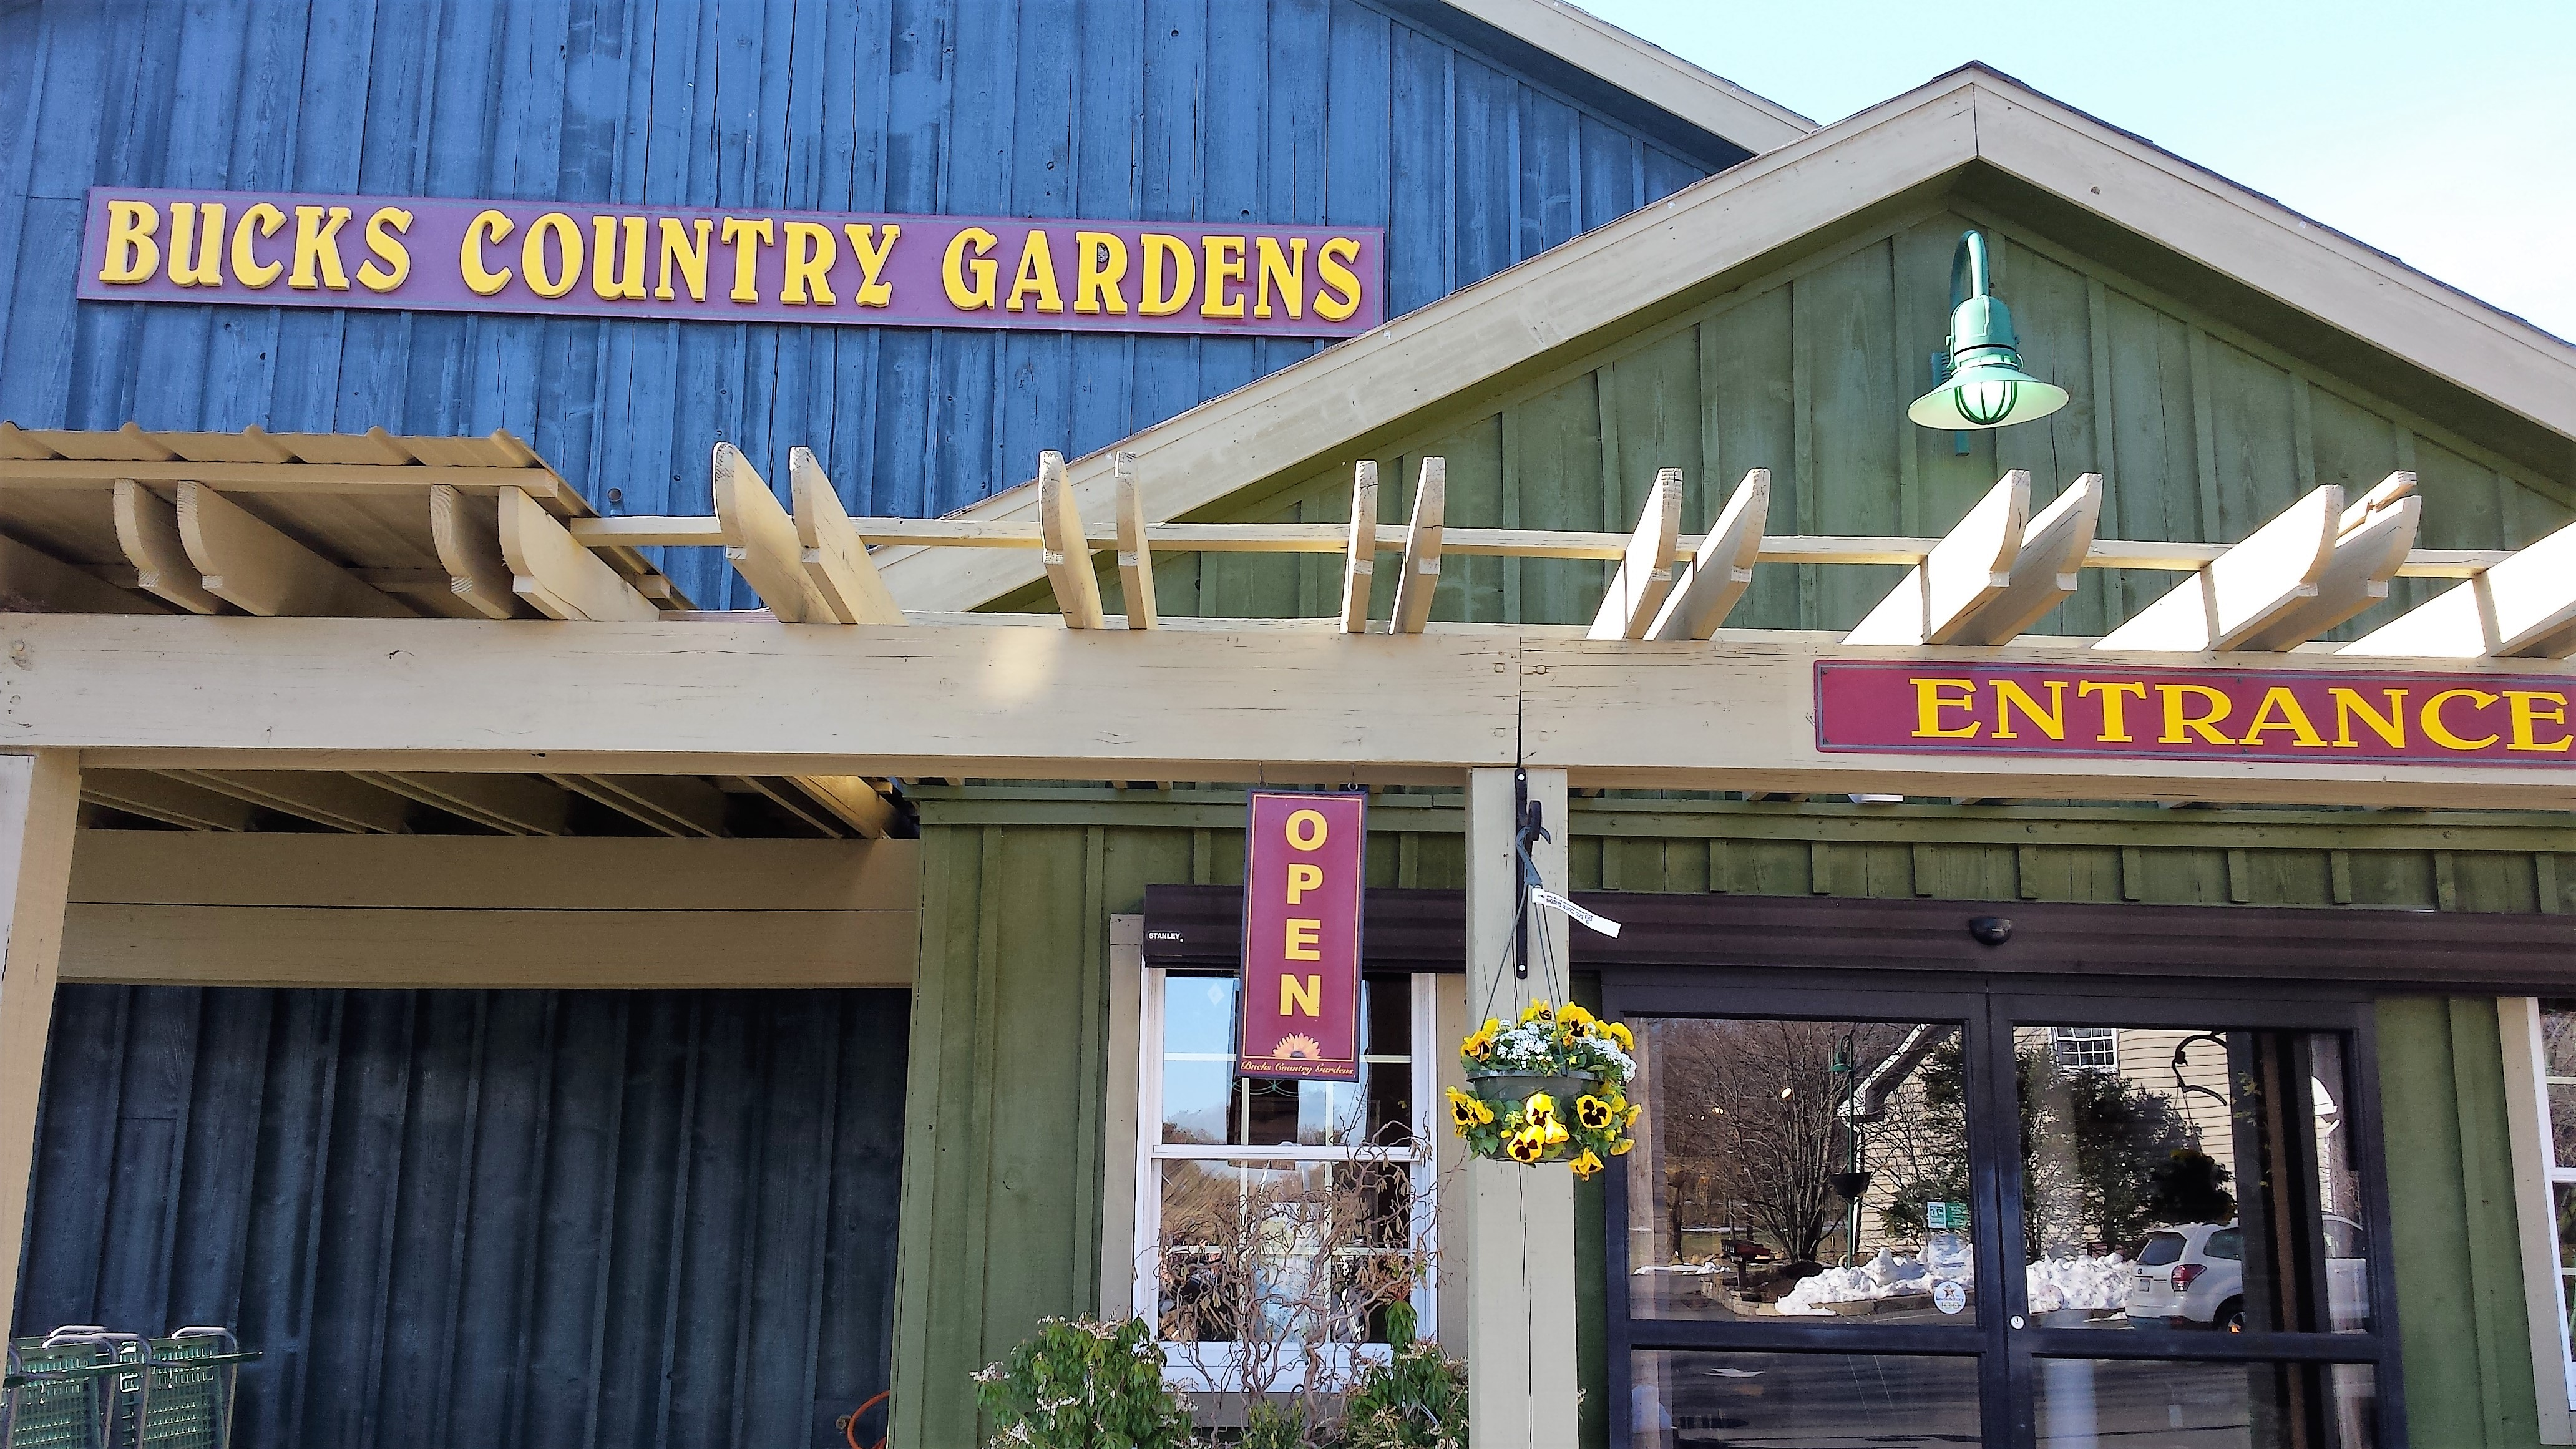 Bucks Country Gardens U2013 A Great Place To Buy Plants, A Terrarium, Shrub,  Fine Pottery, Garden Supplies And Patio Furniture. Wander Through The  Designed ...